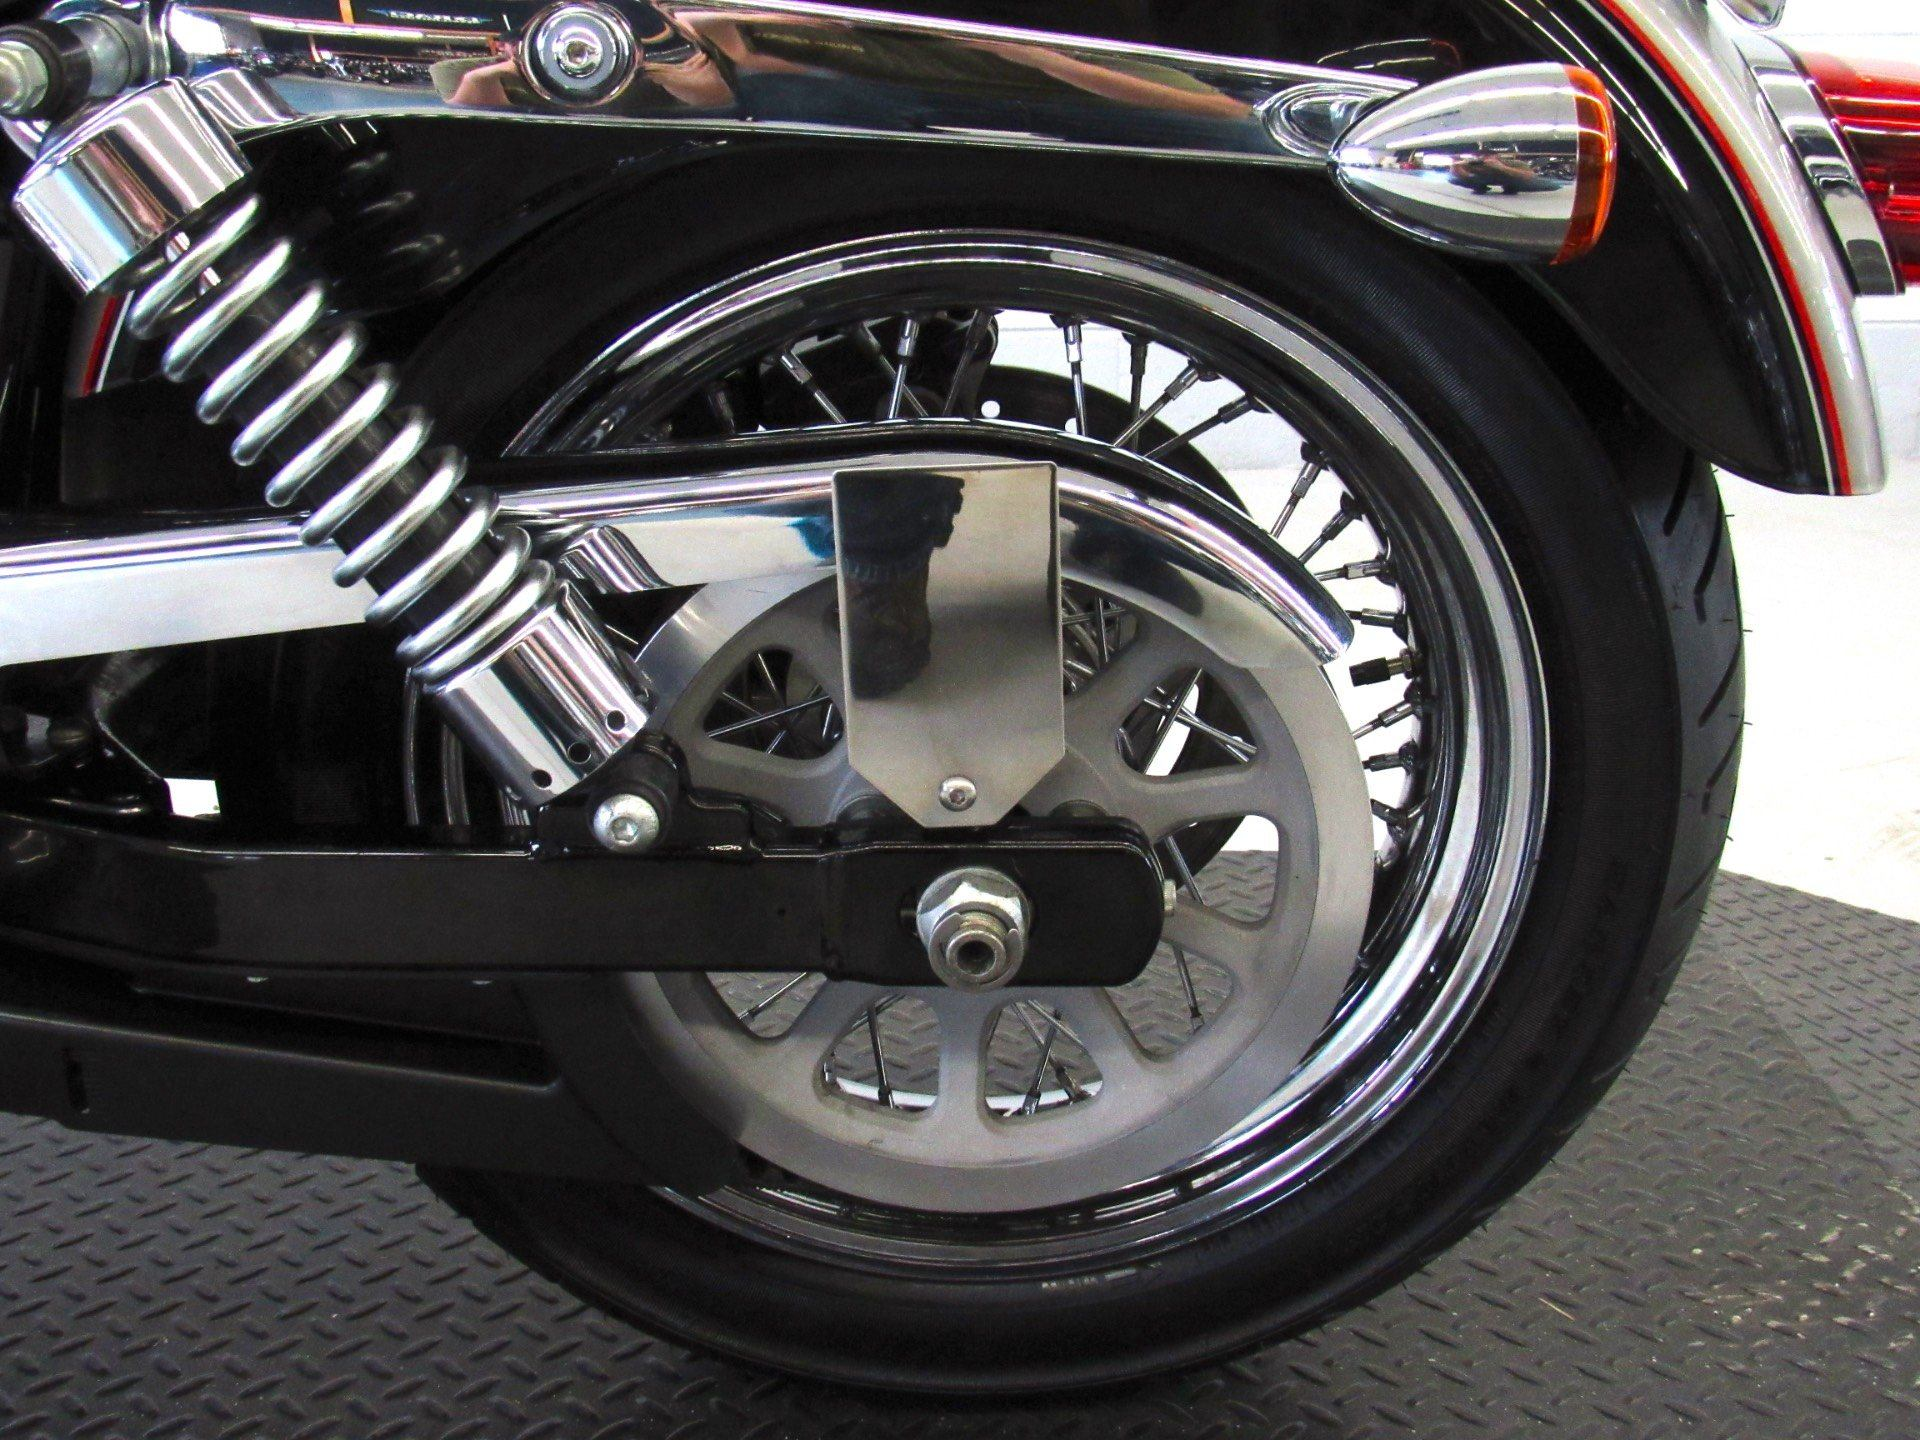 2009 Harley-Davidson Dyna® Super Glide® Custom in Fredericksburg, Virginia - Photo 22